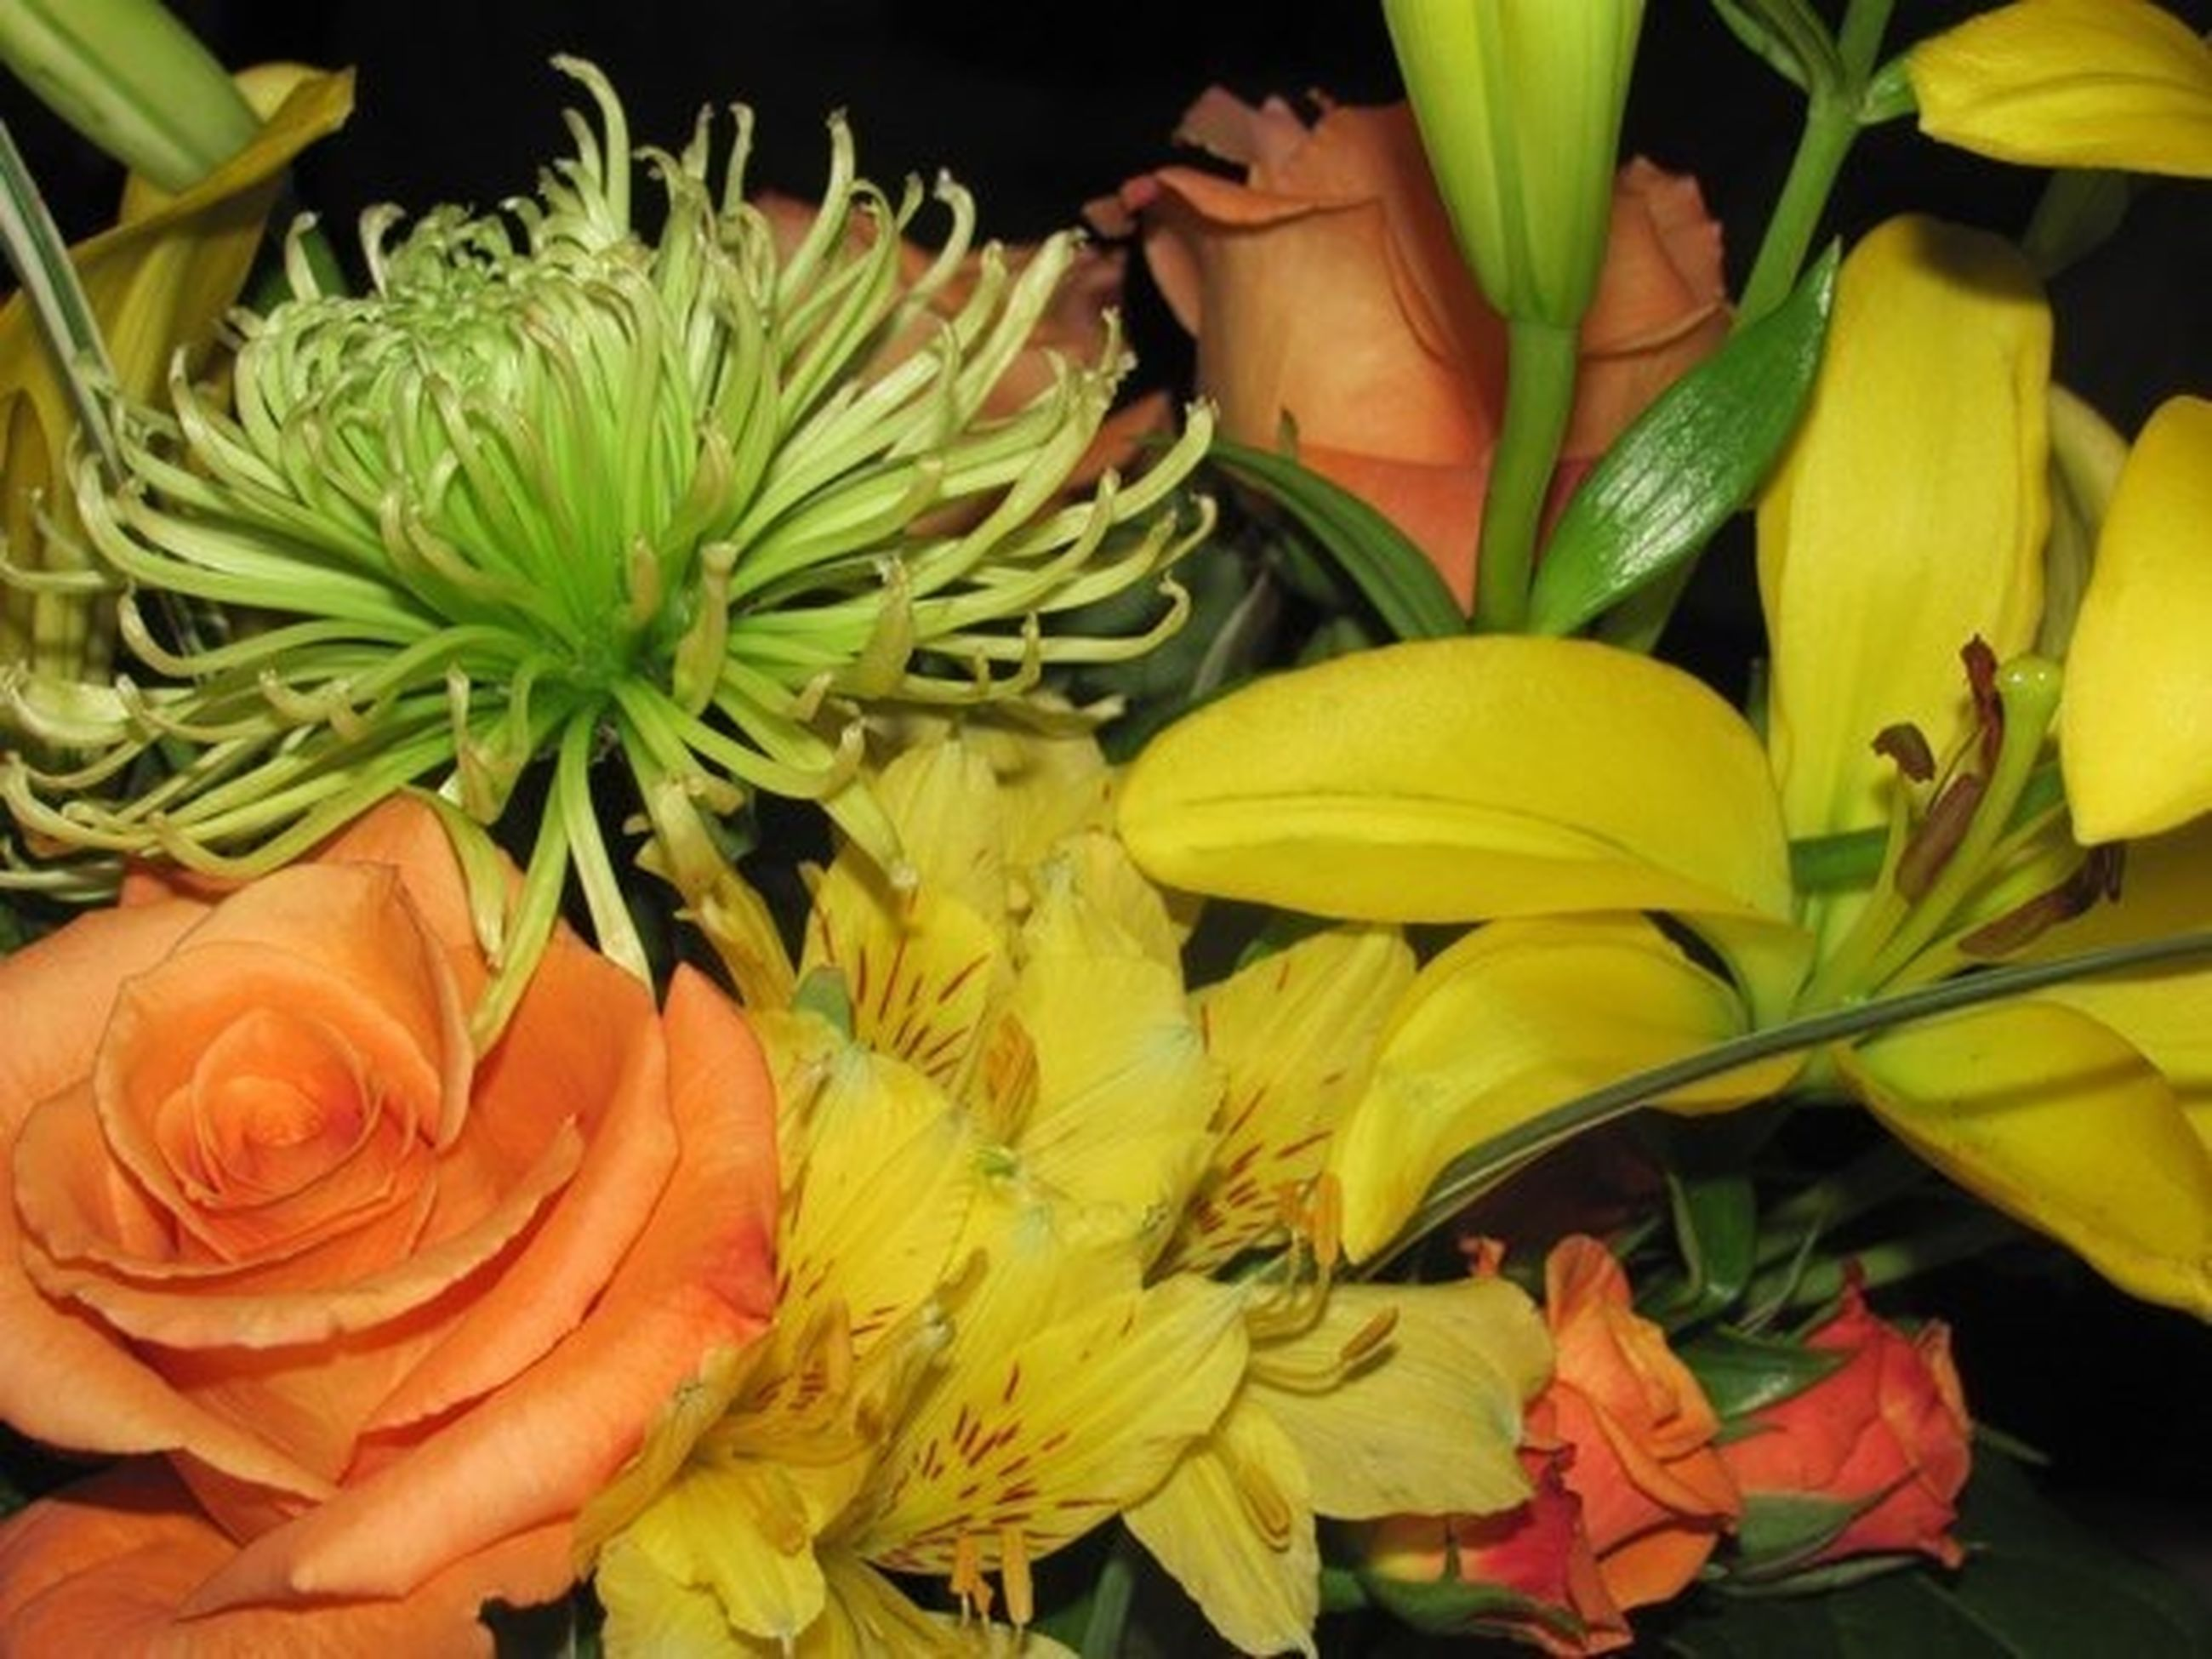 flower, freshness, petal, flower head, fragility, growth, plant, yellow, beauty in nature, high angle view, nature, blooming, leaf, close-up, potted plant, no people, indoors, green color, in bloom, orange color